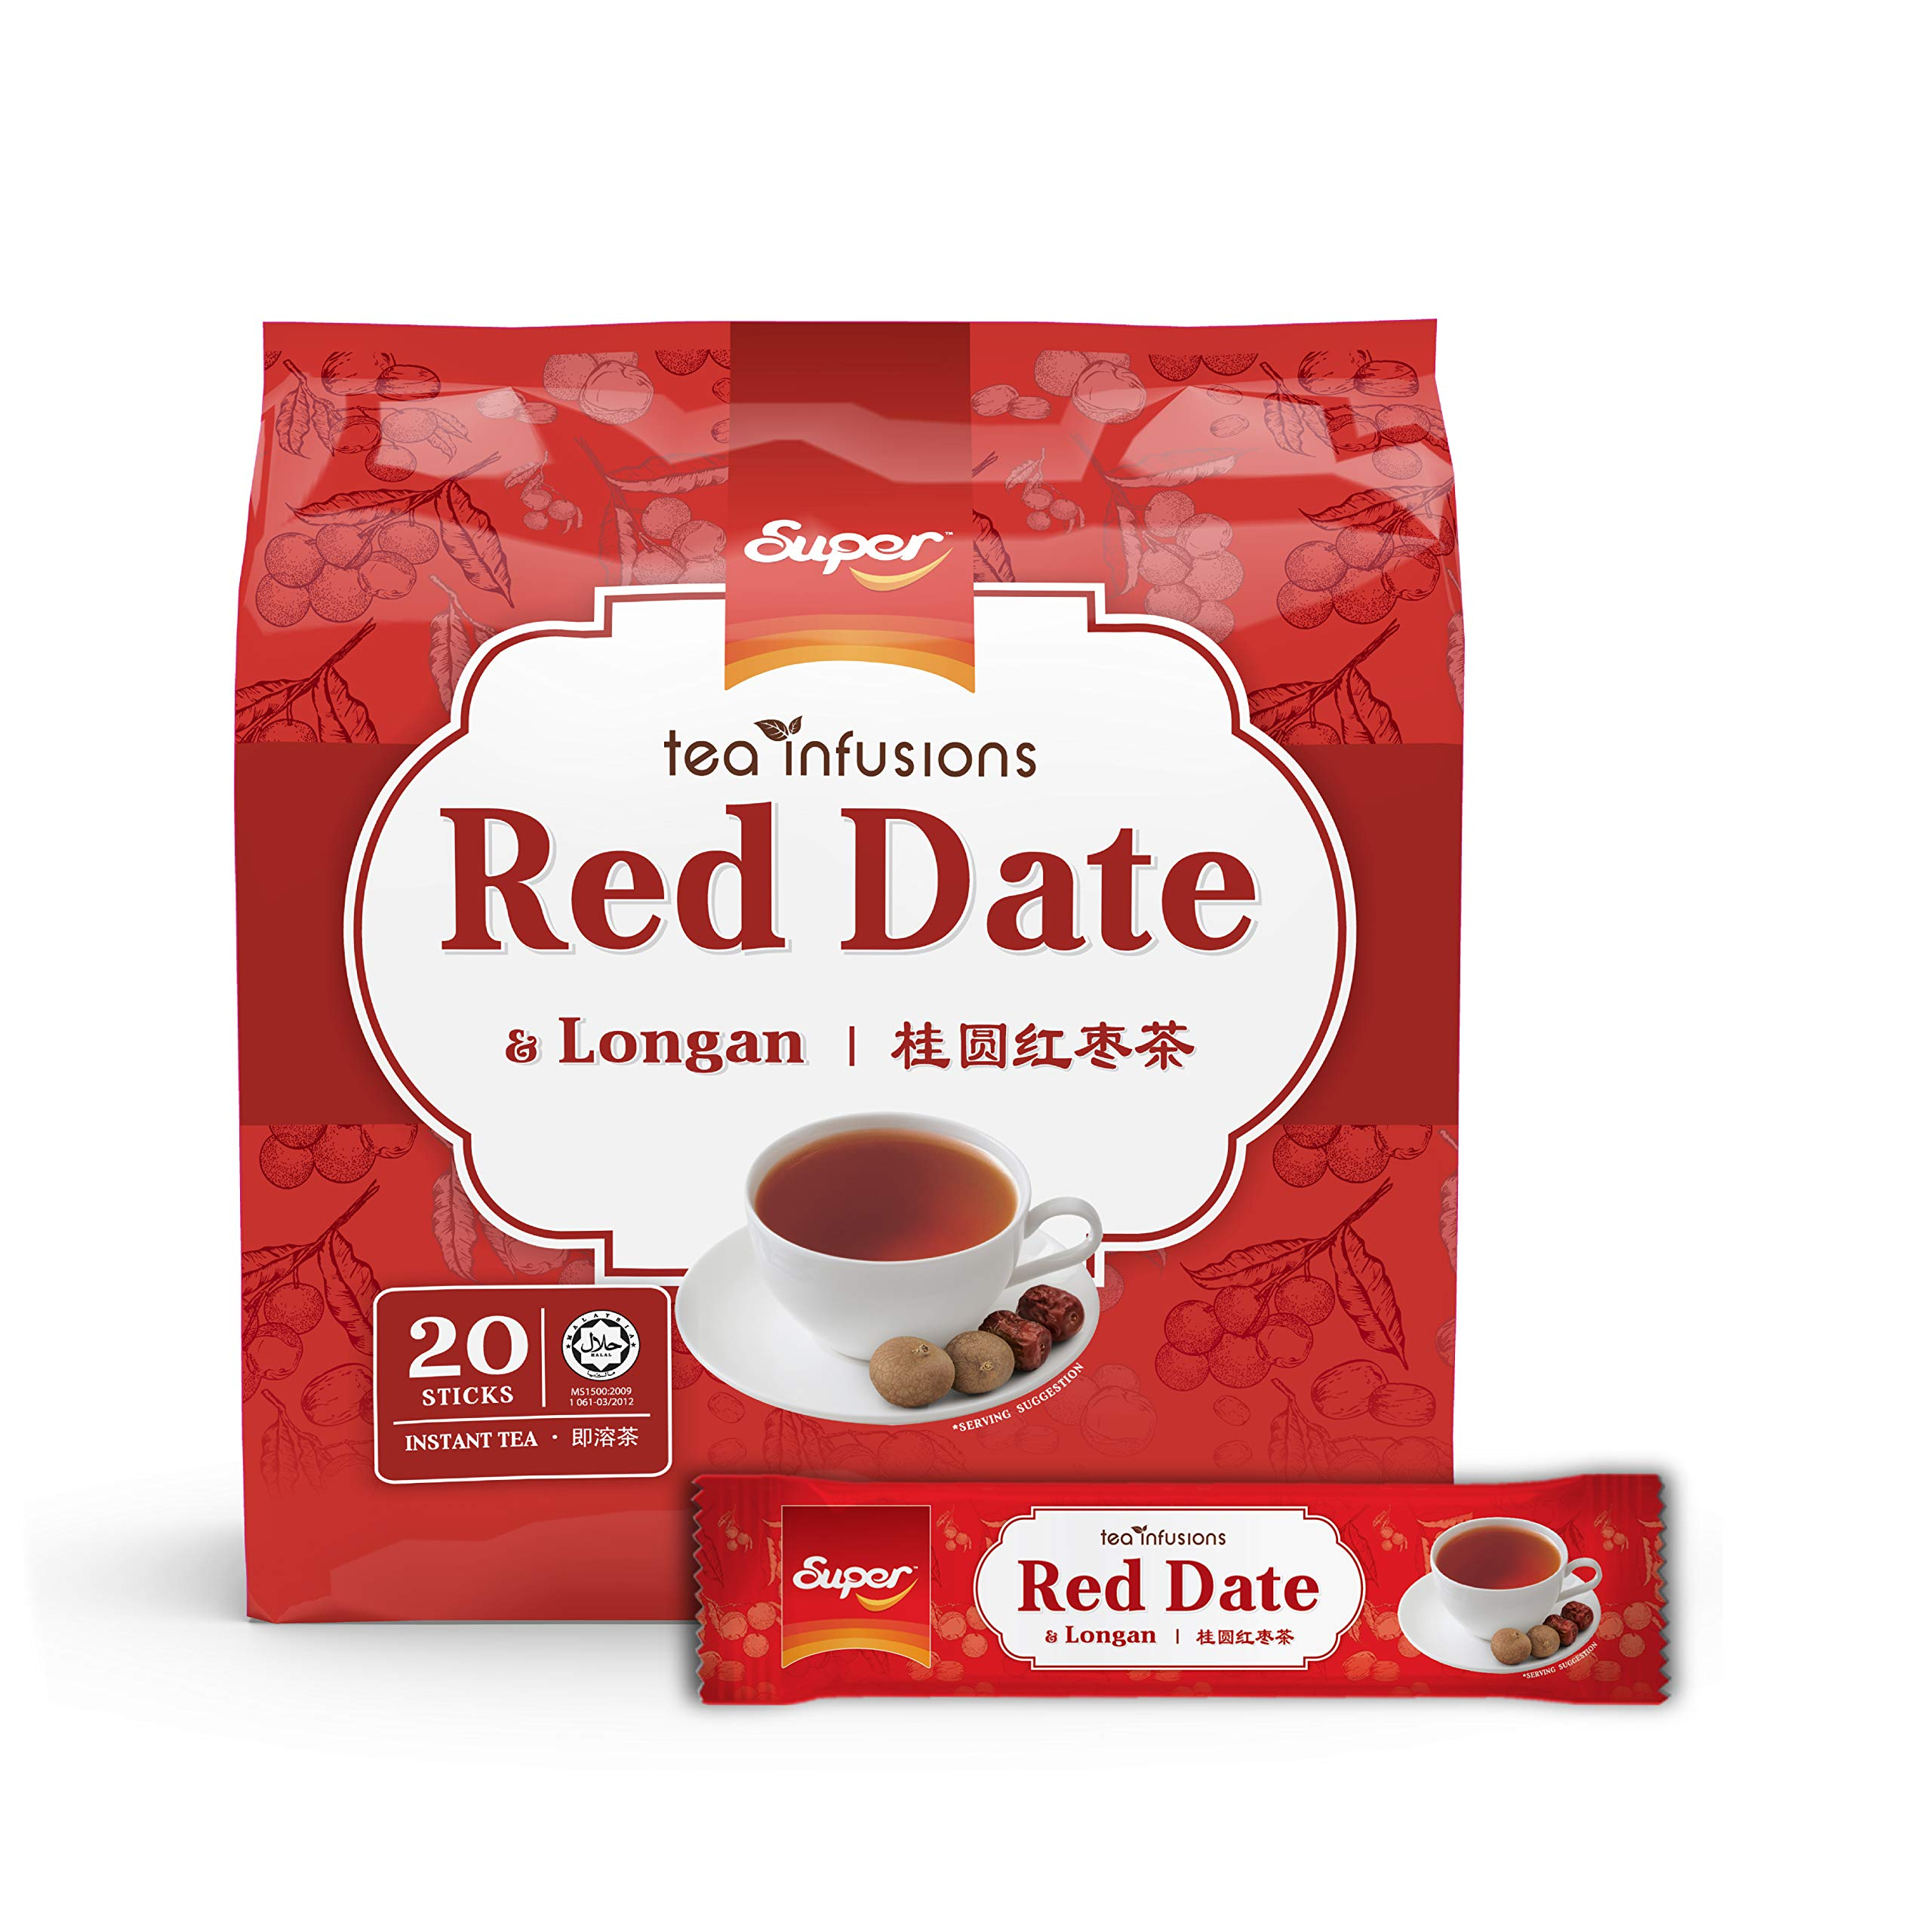 SUPER Red Date and Longan Tea